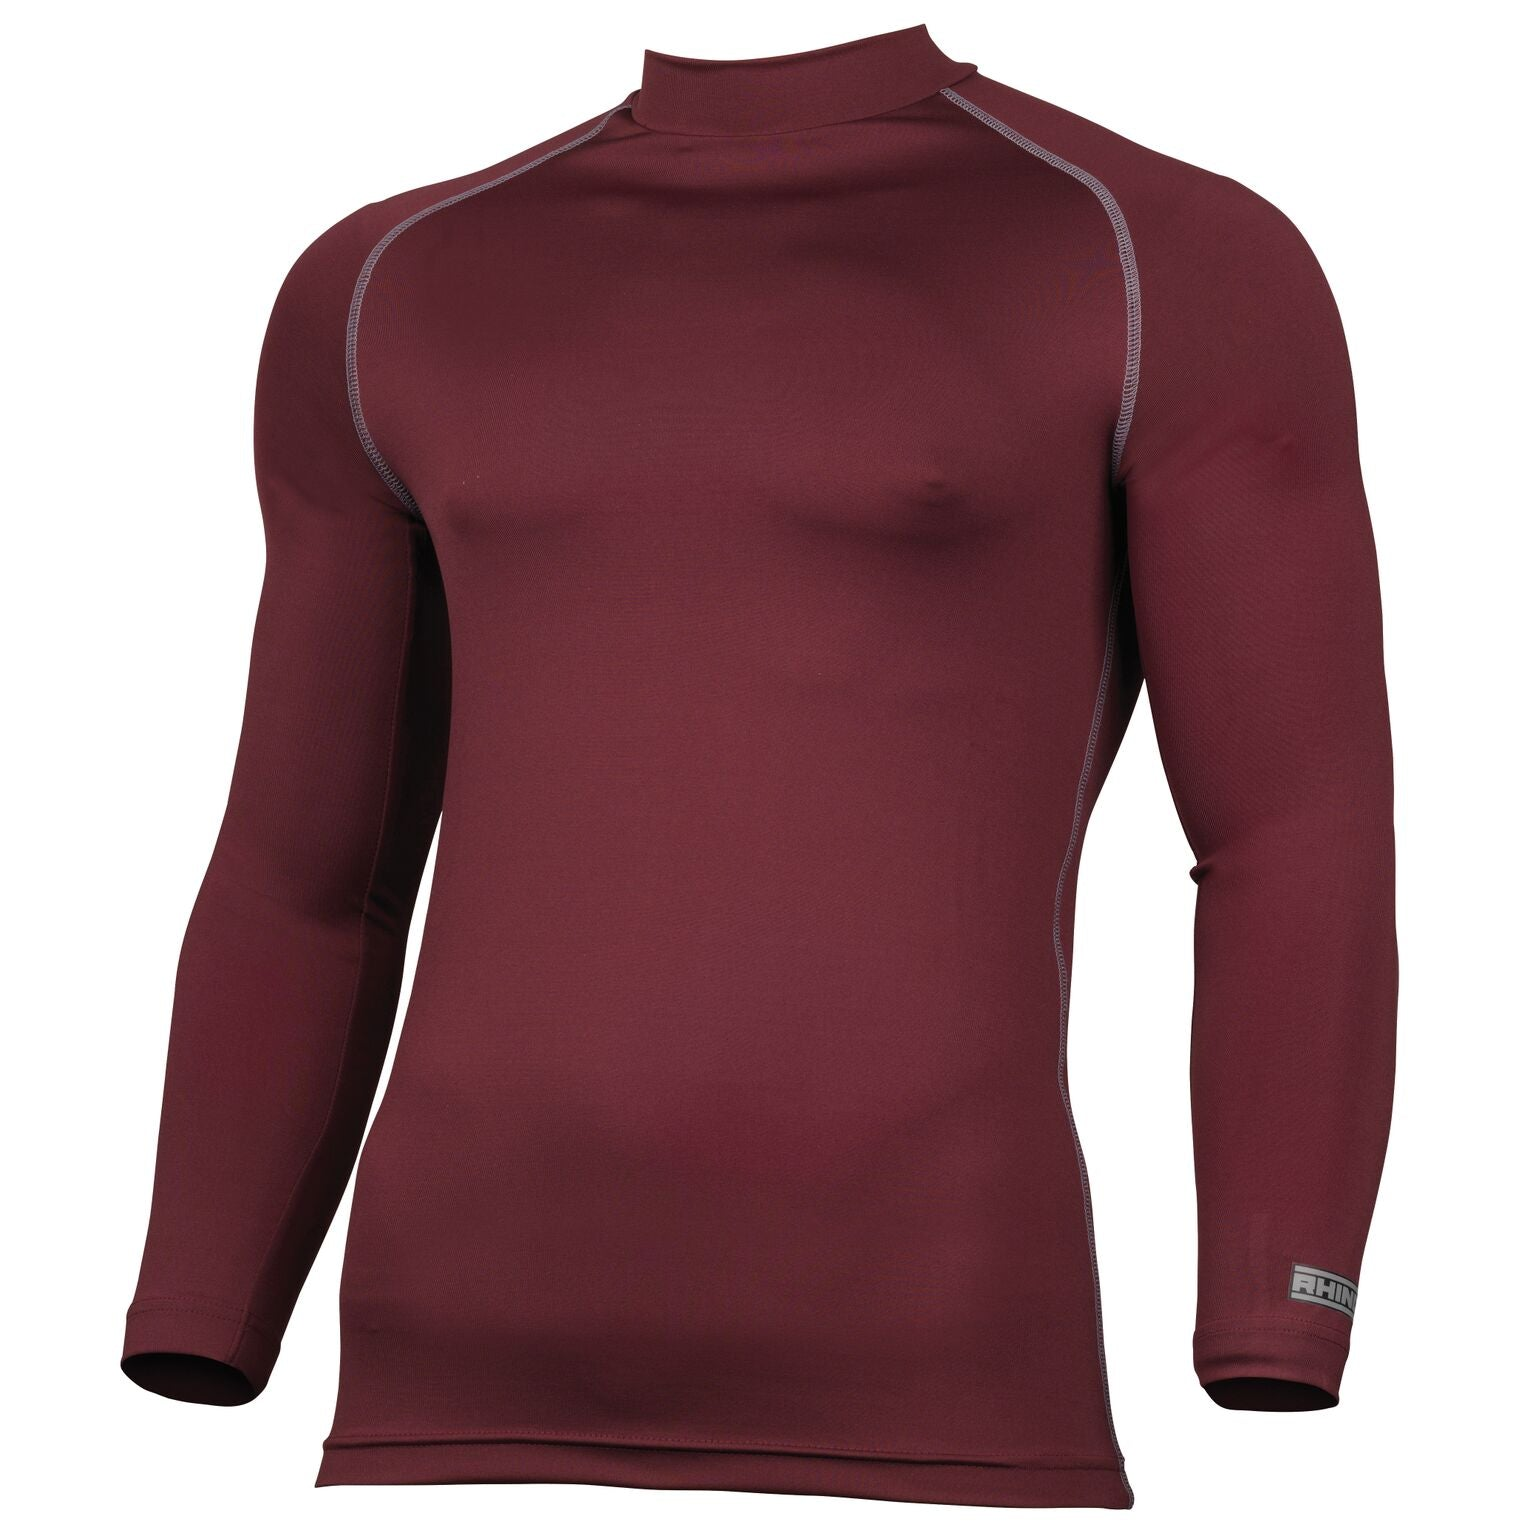 Rhino Baselayer - Long Sleeve - Maroon